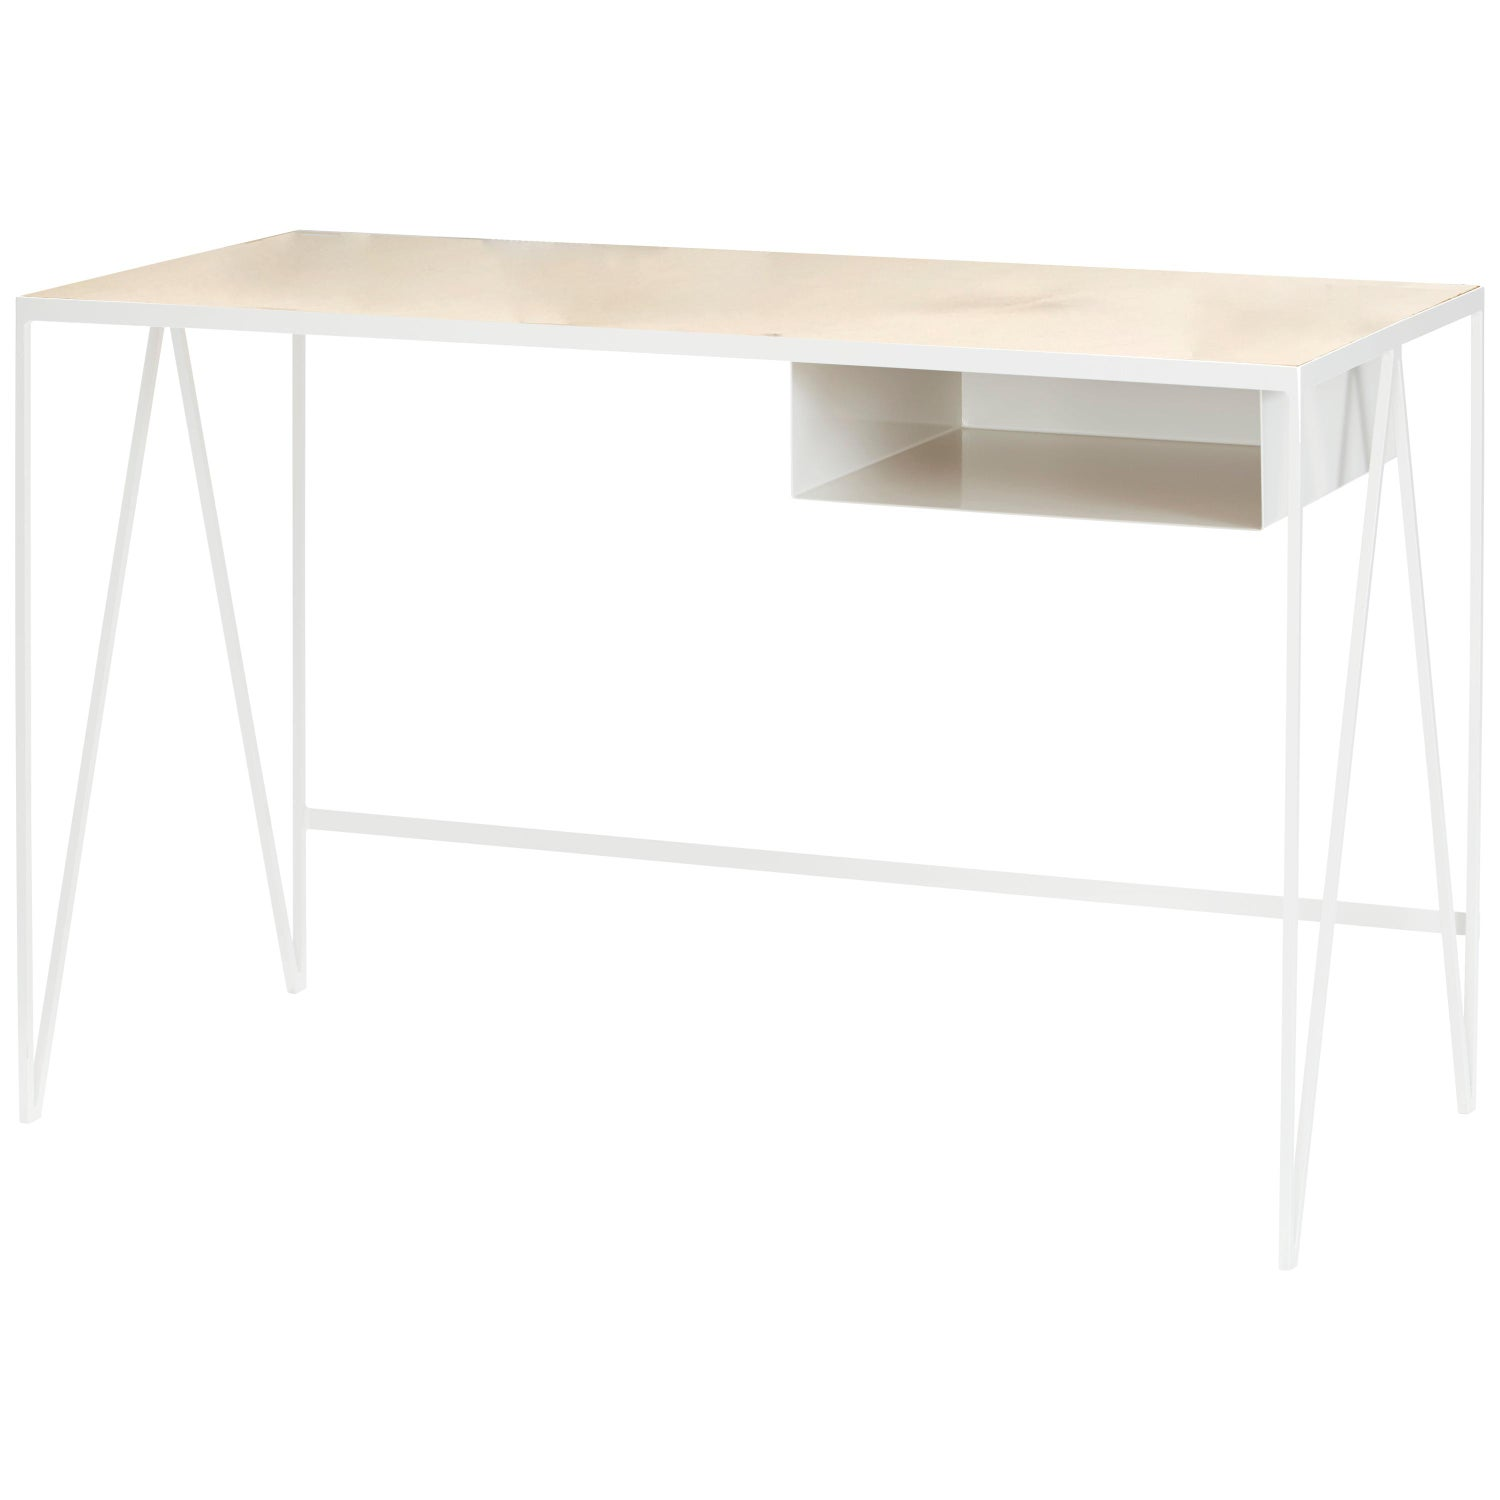 White Steel Study Desk with Birch Wood Table Top or Writing Table